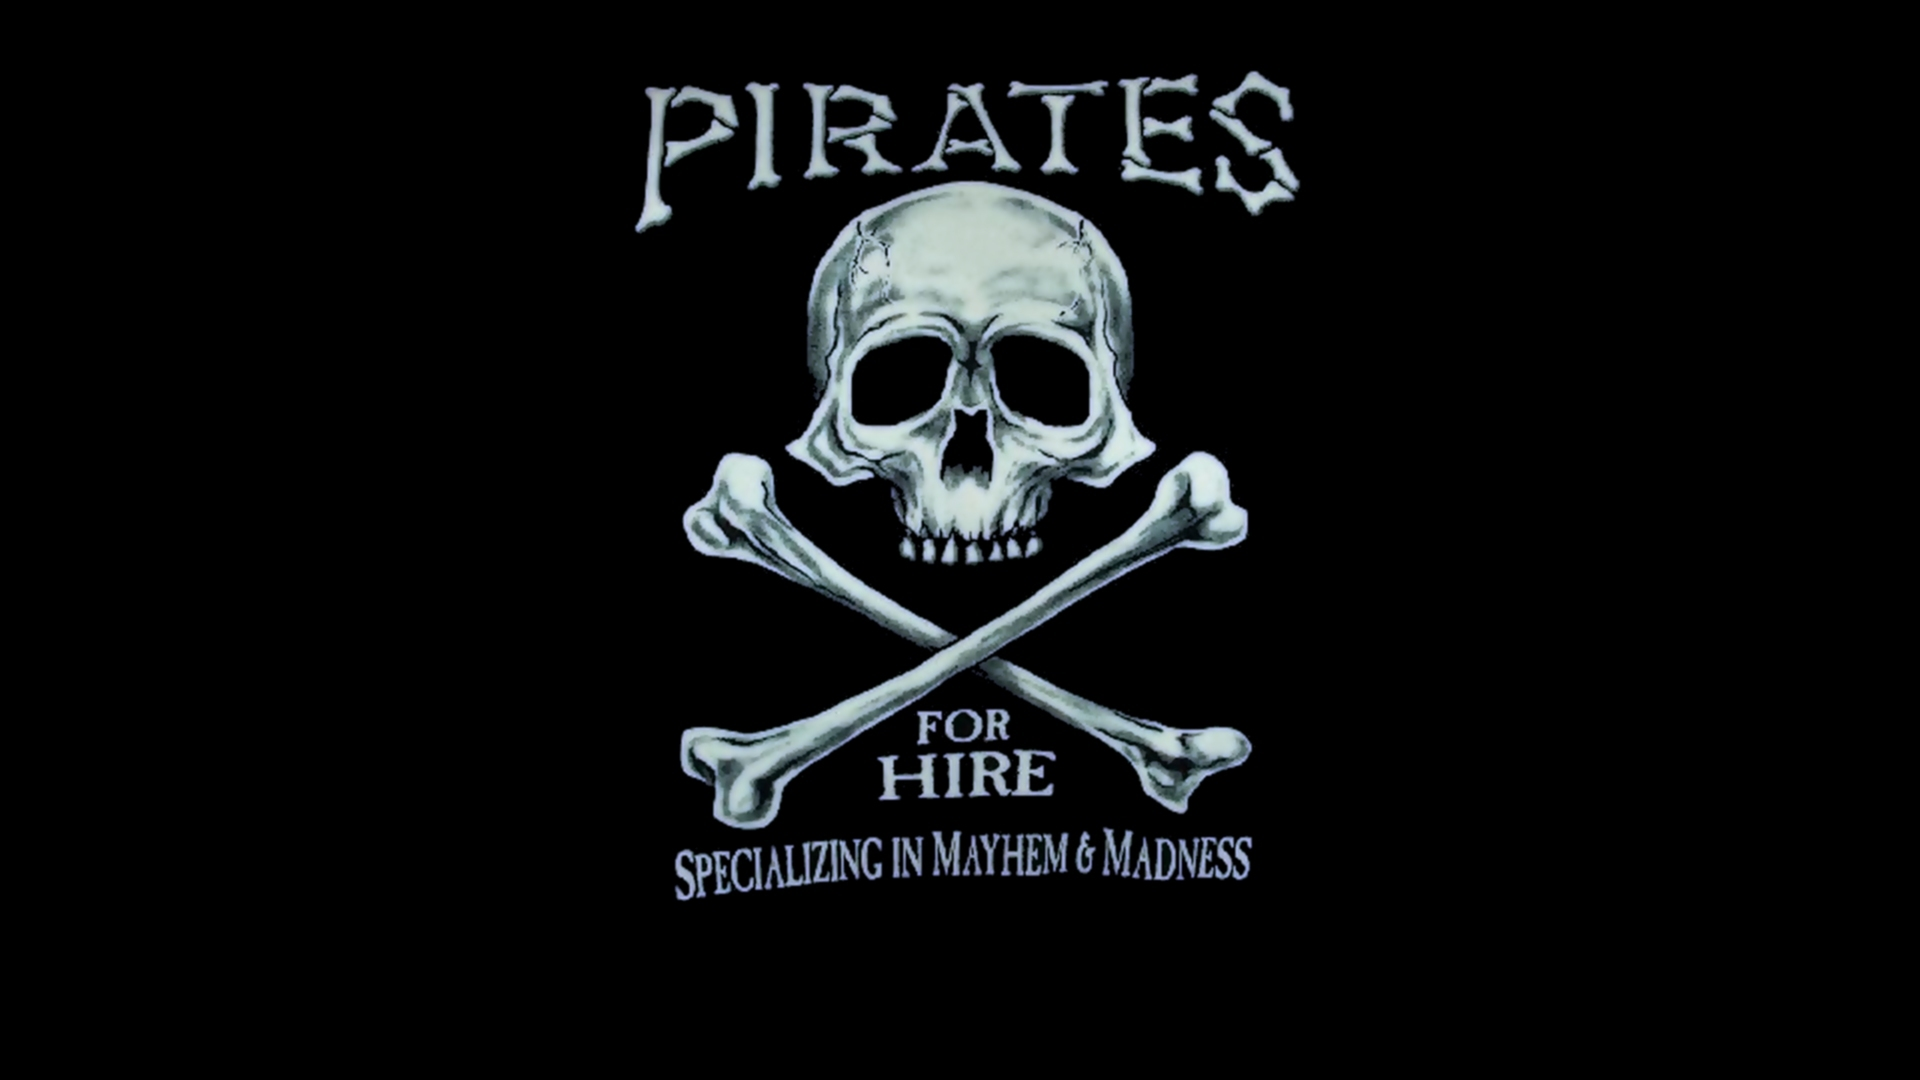 pirates HD Wallpaper